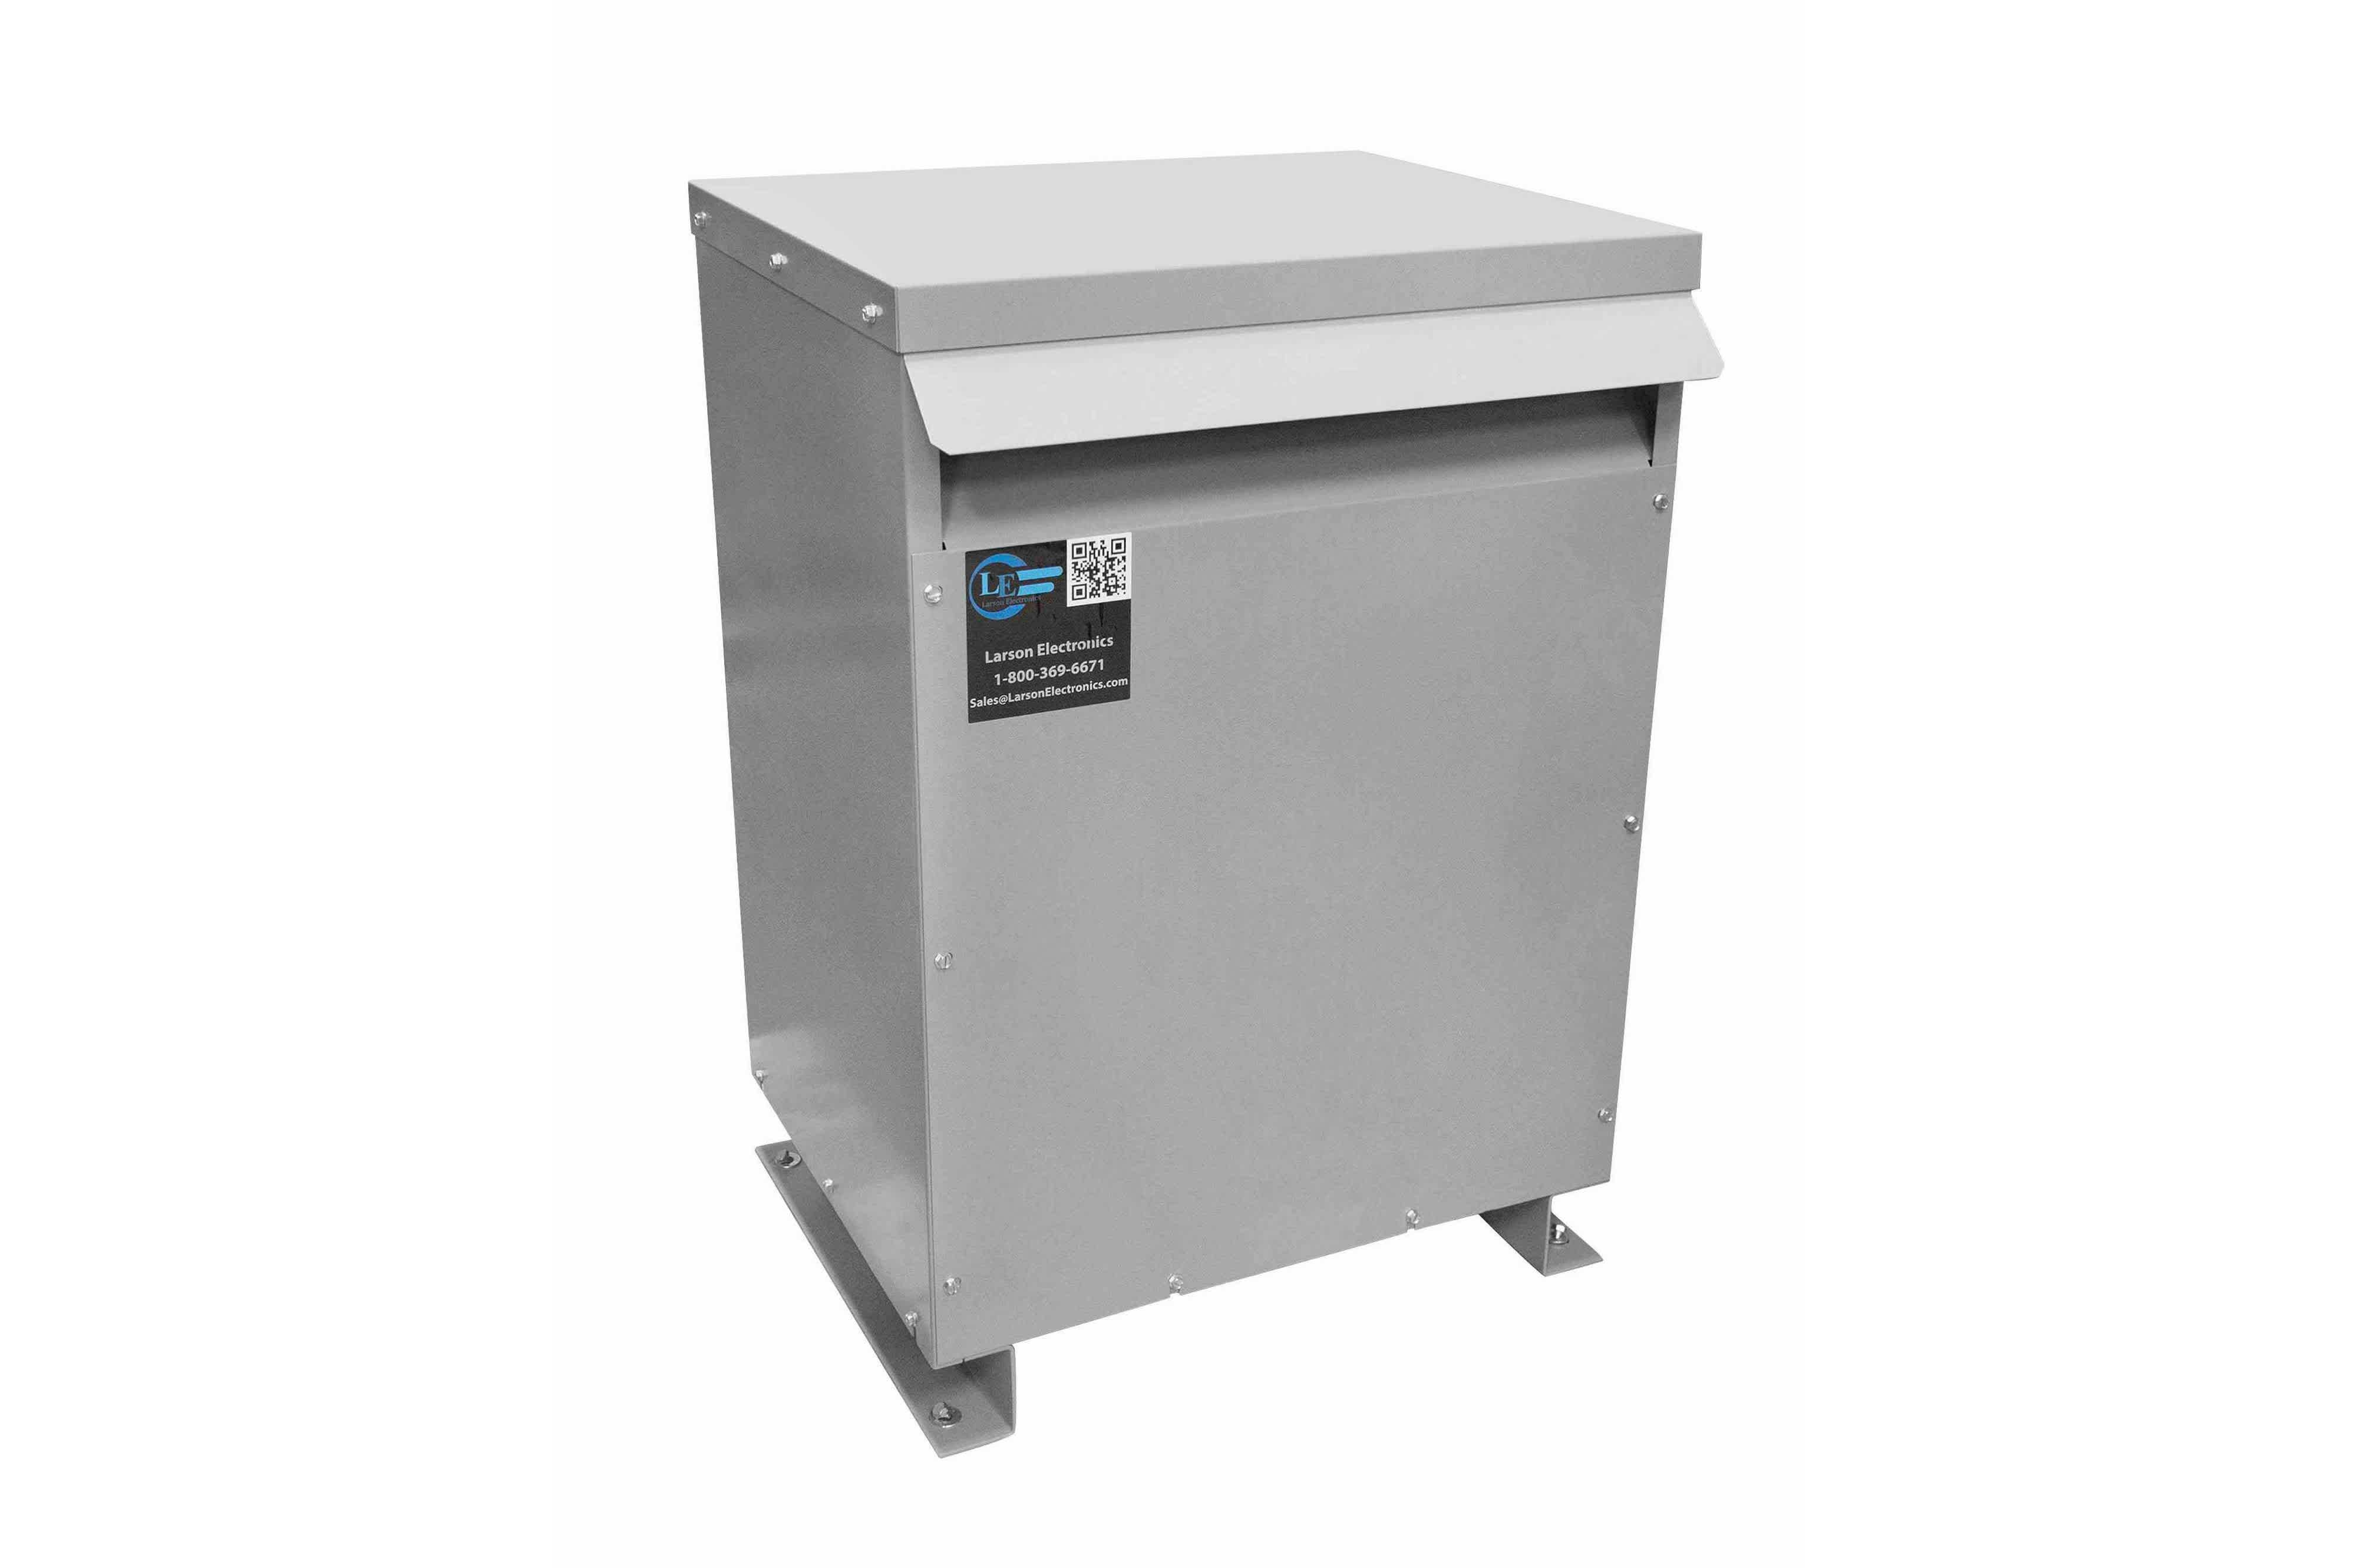 175 kVA 3PH Isolation Transformer, 400V Wye Primary, 600Y/347 Wye-N Secondary, N3R, Ventilated, 60 Hz